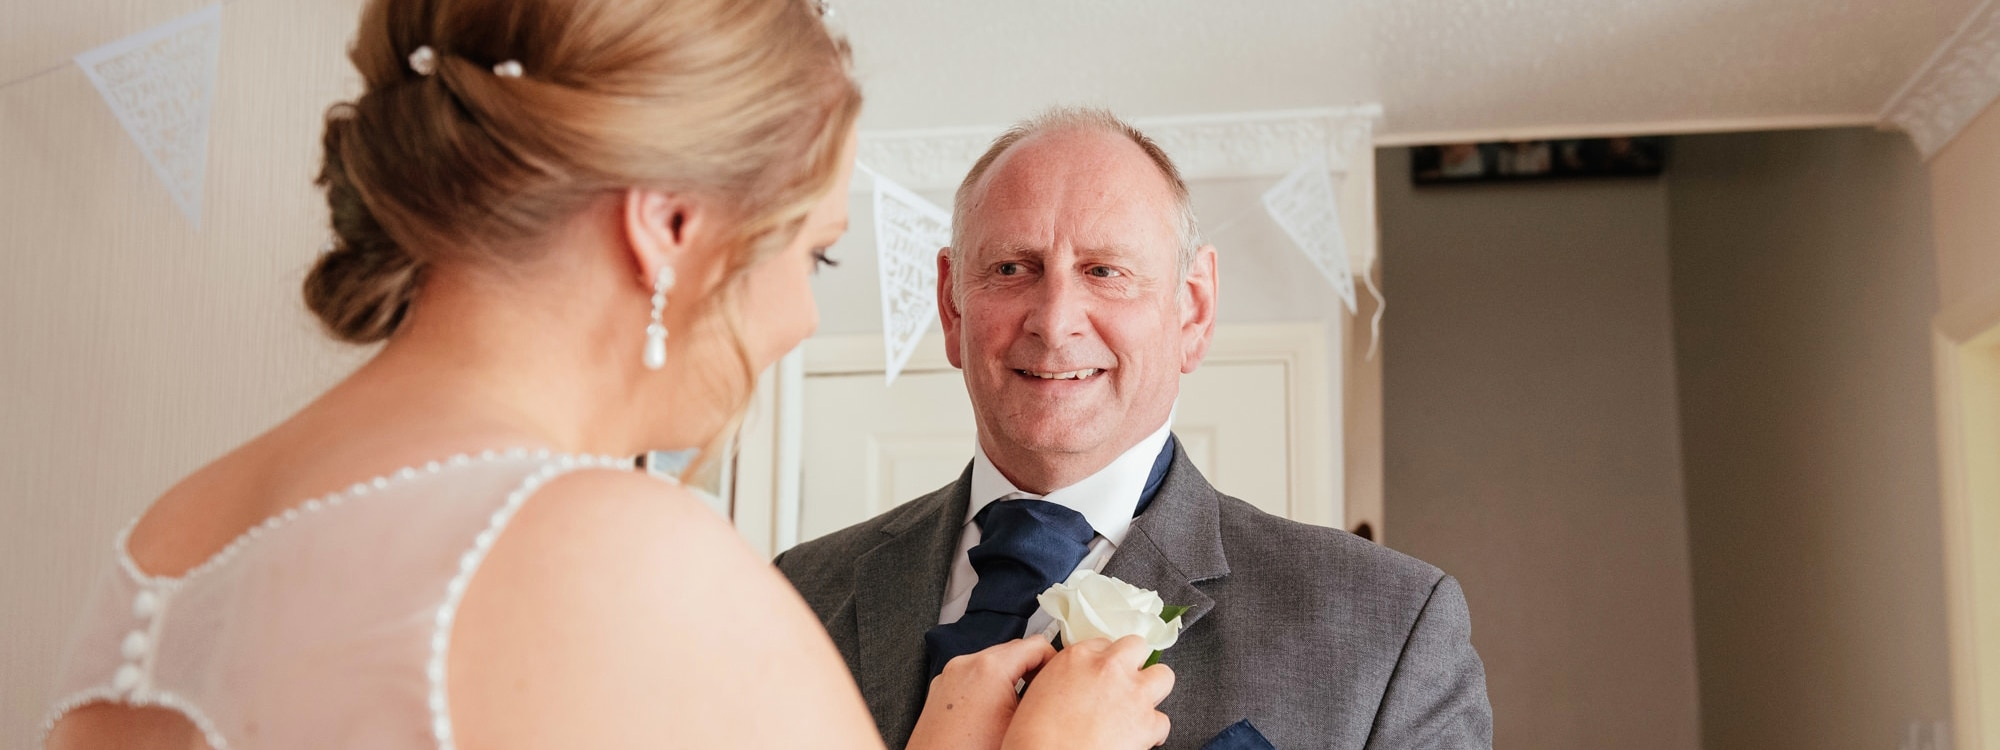 Bride helps father with button hole Essex Wedding